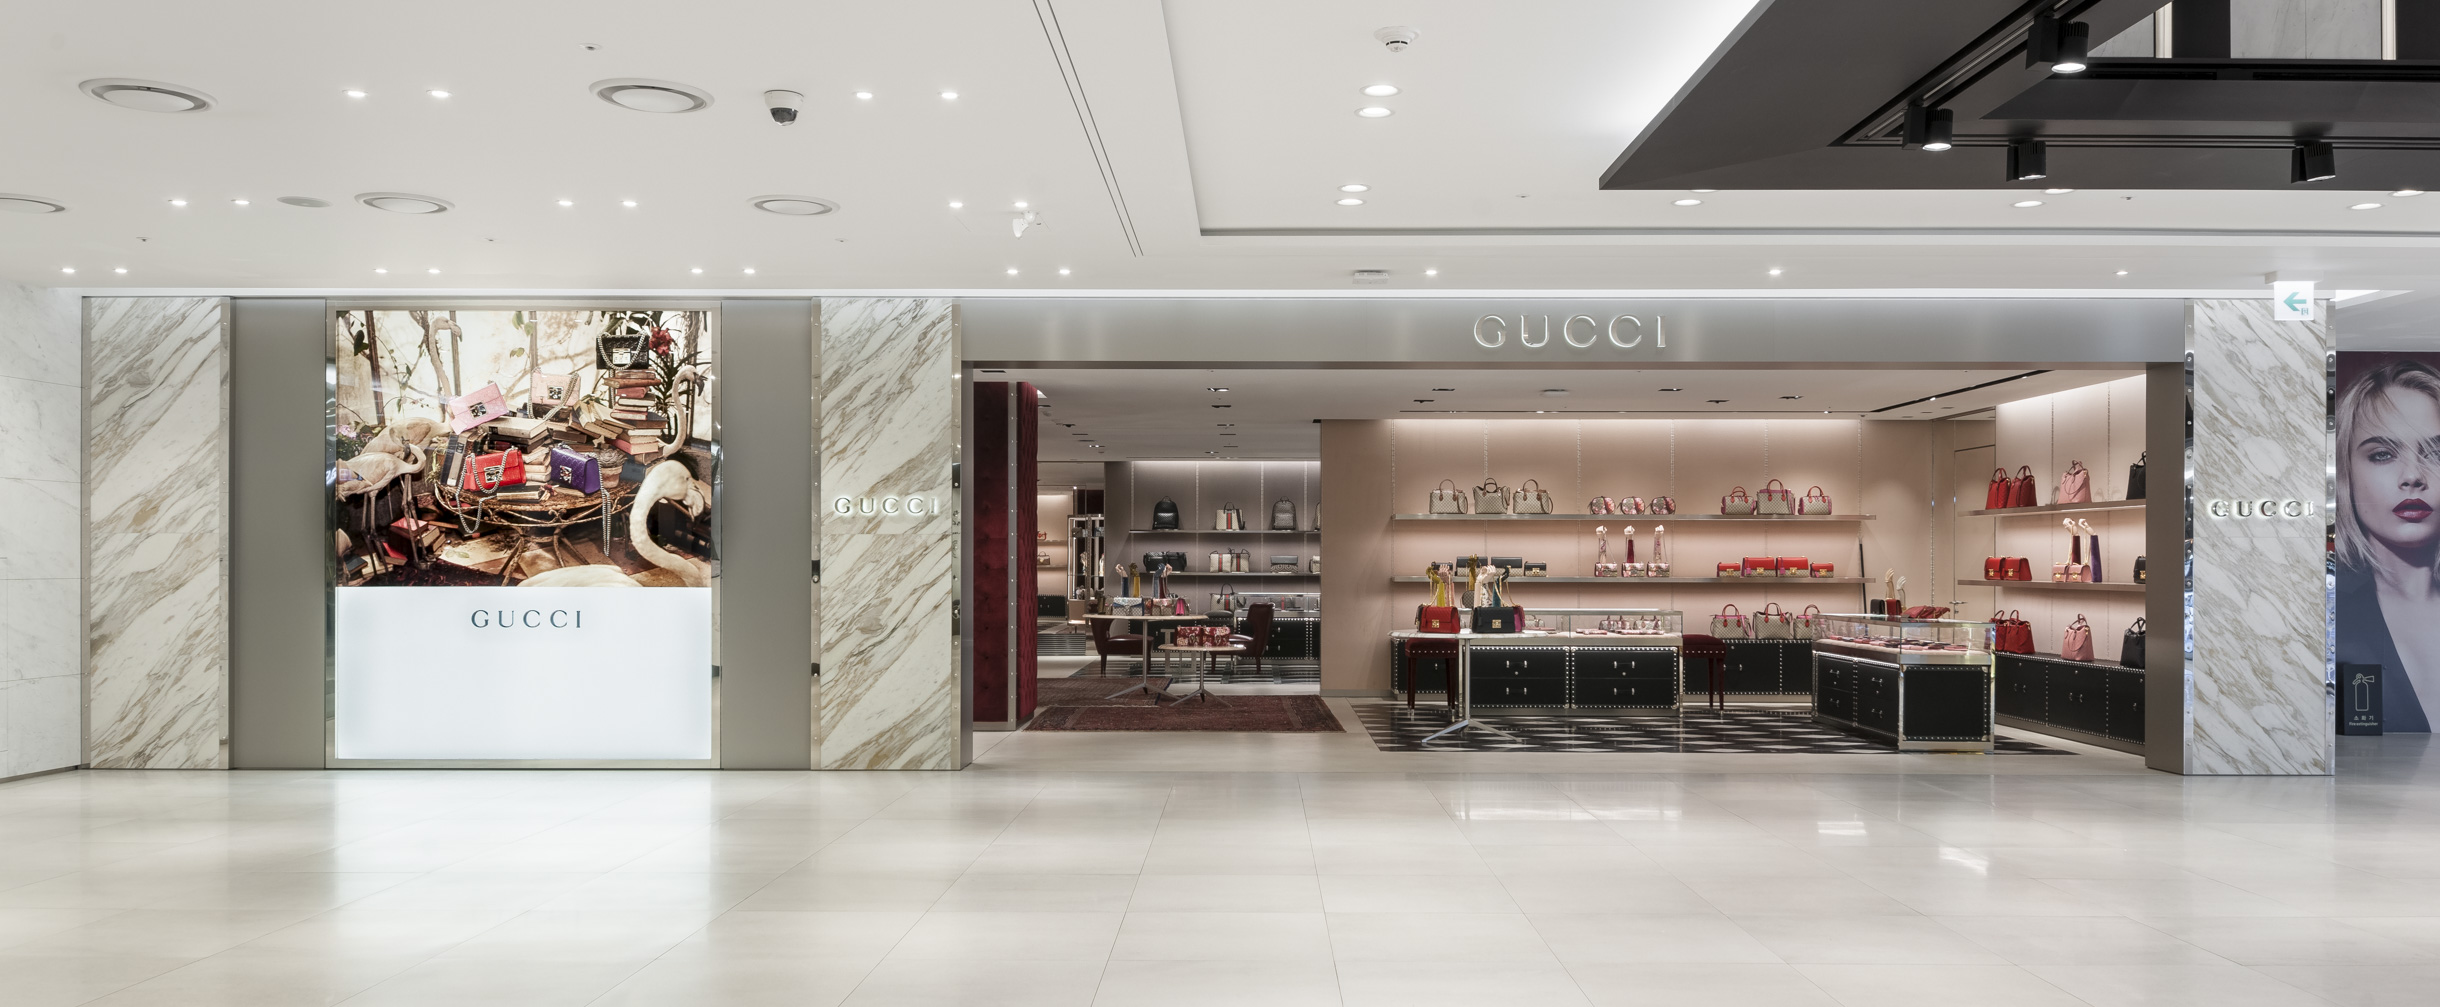 gucci store interior 2016. gucci @ building 63. luxury retail gucci store interior 2016